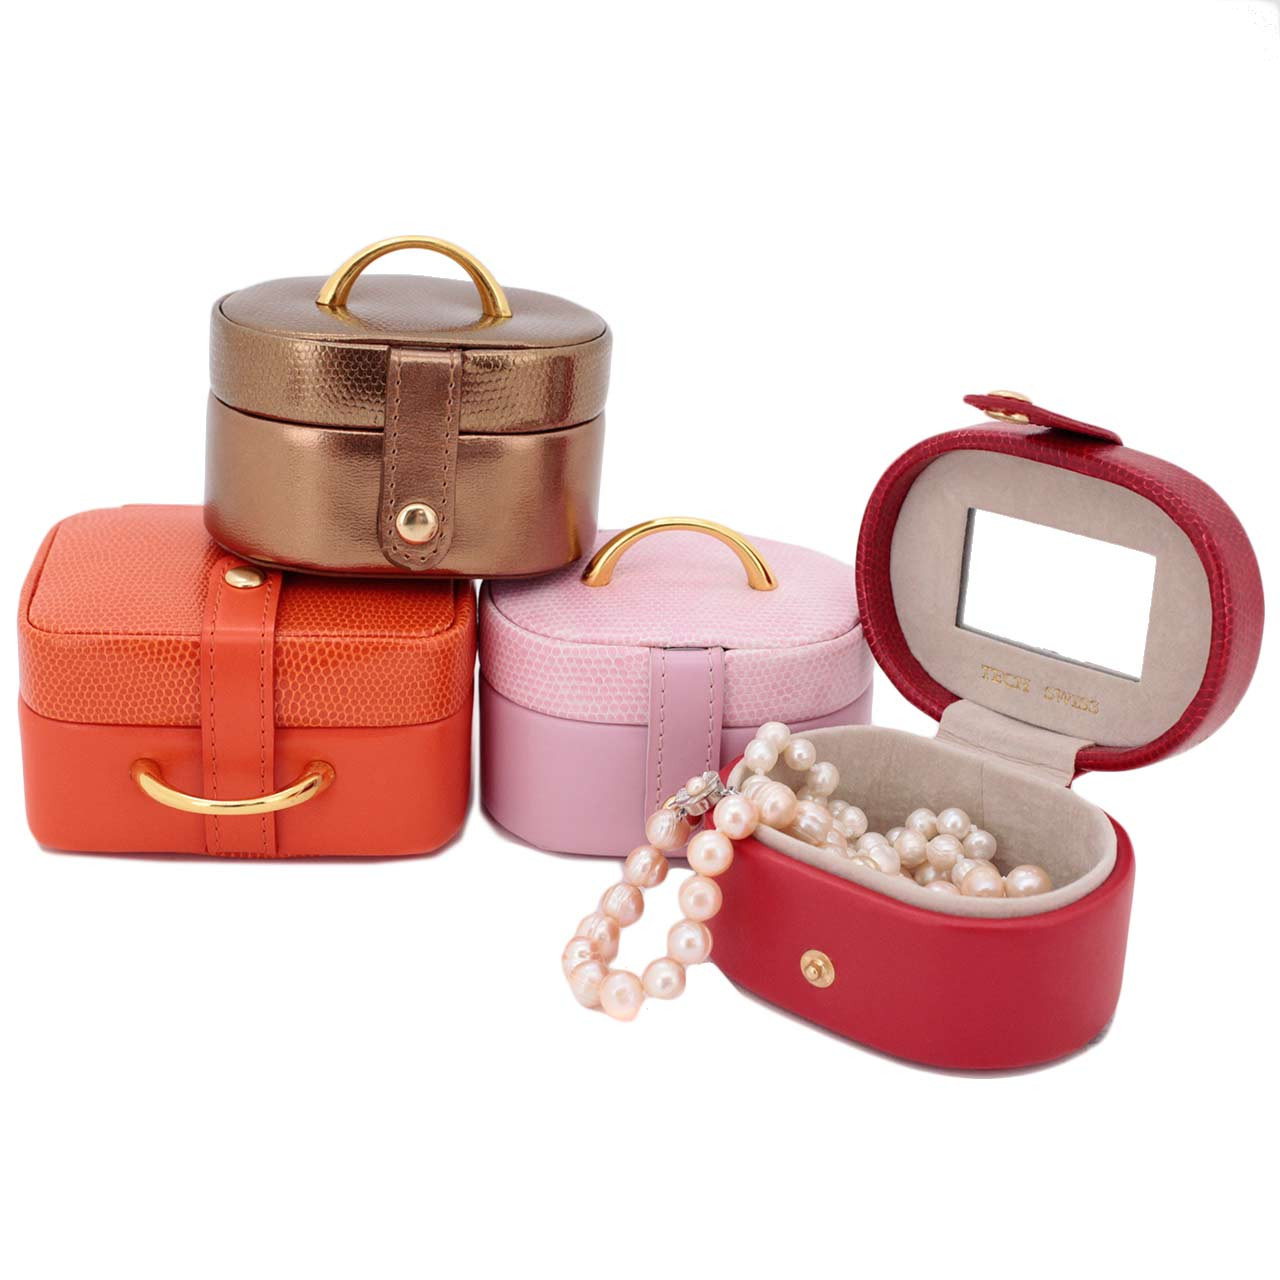 Mini Jewelry Box Set in Pink Red Orange Bronze Leather Gift